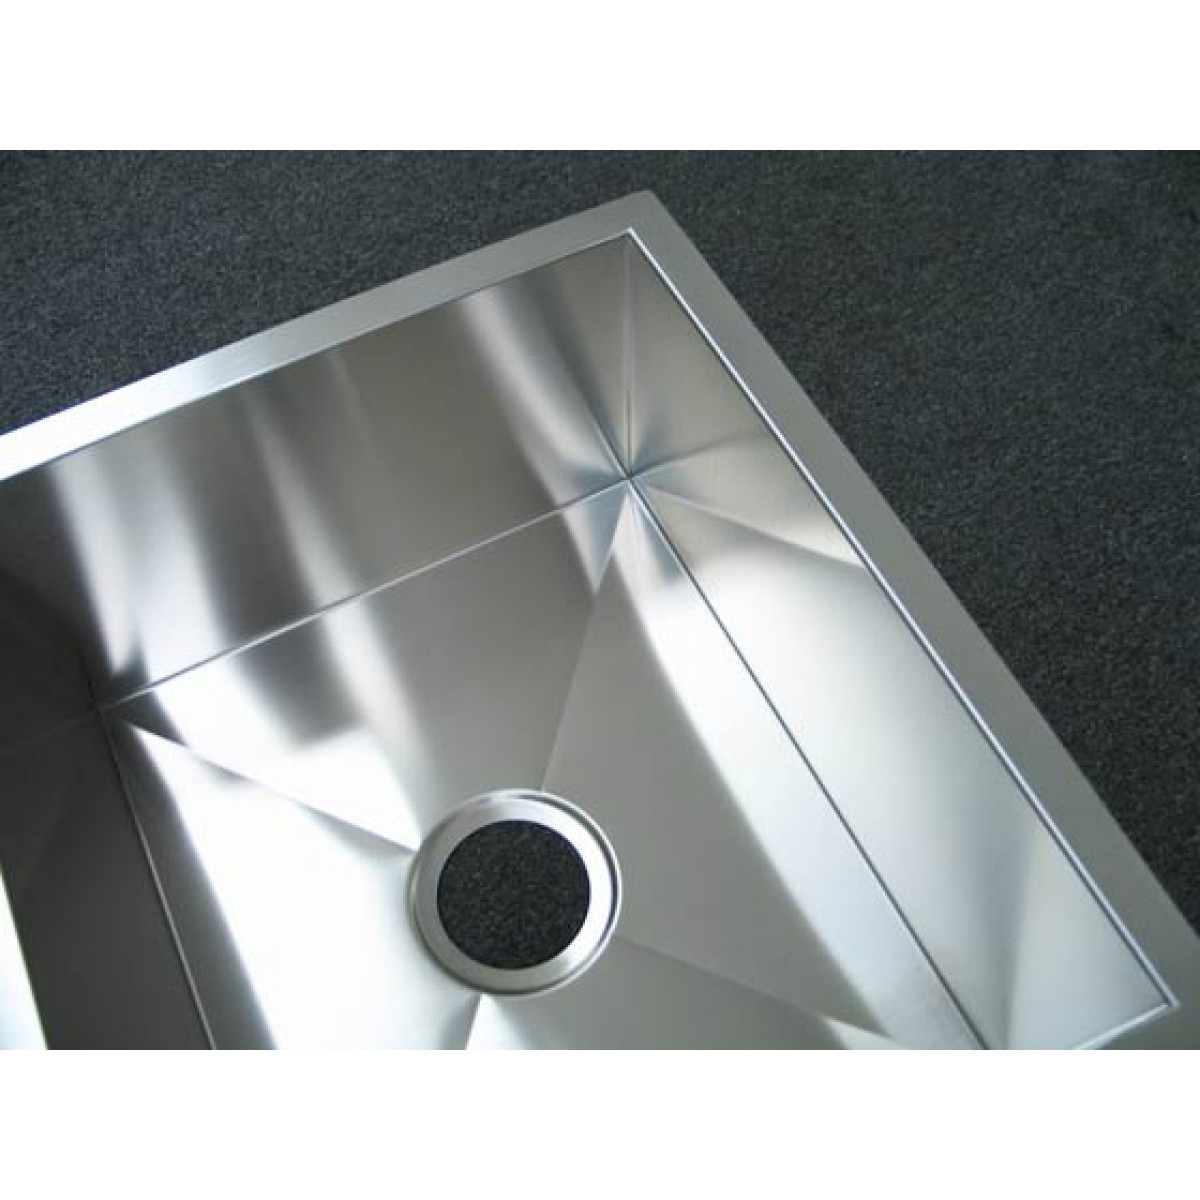 29 Inch Stainless Steel Undermount 50 50 Double Bowl